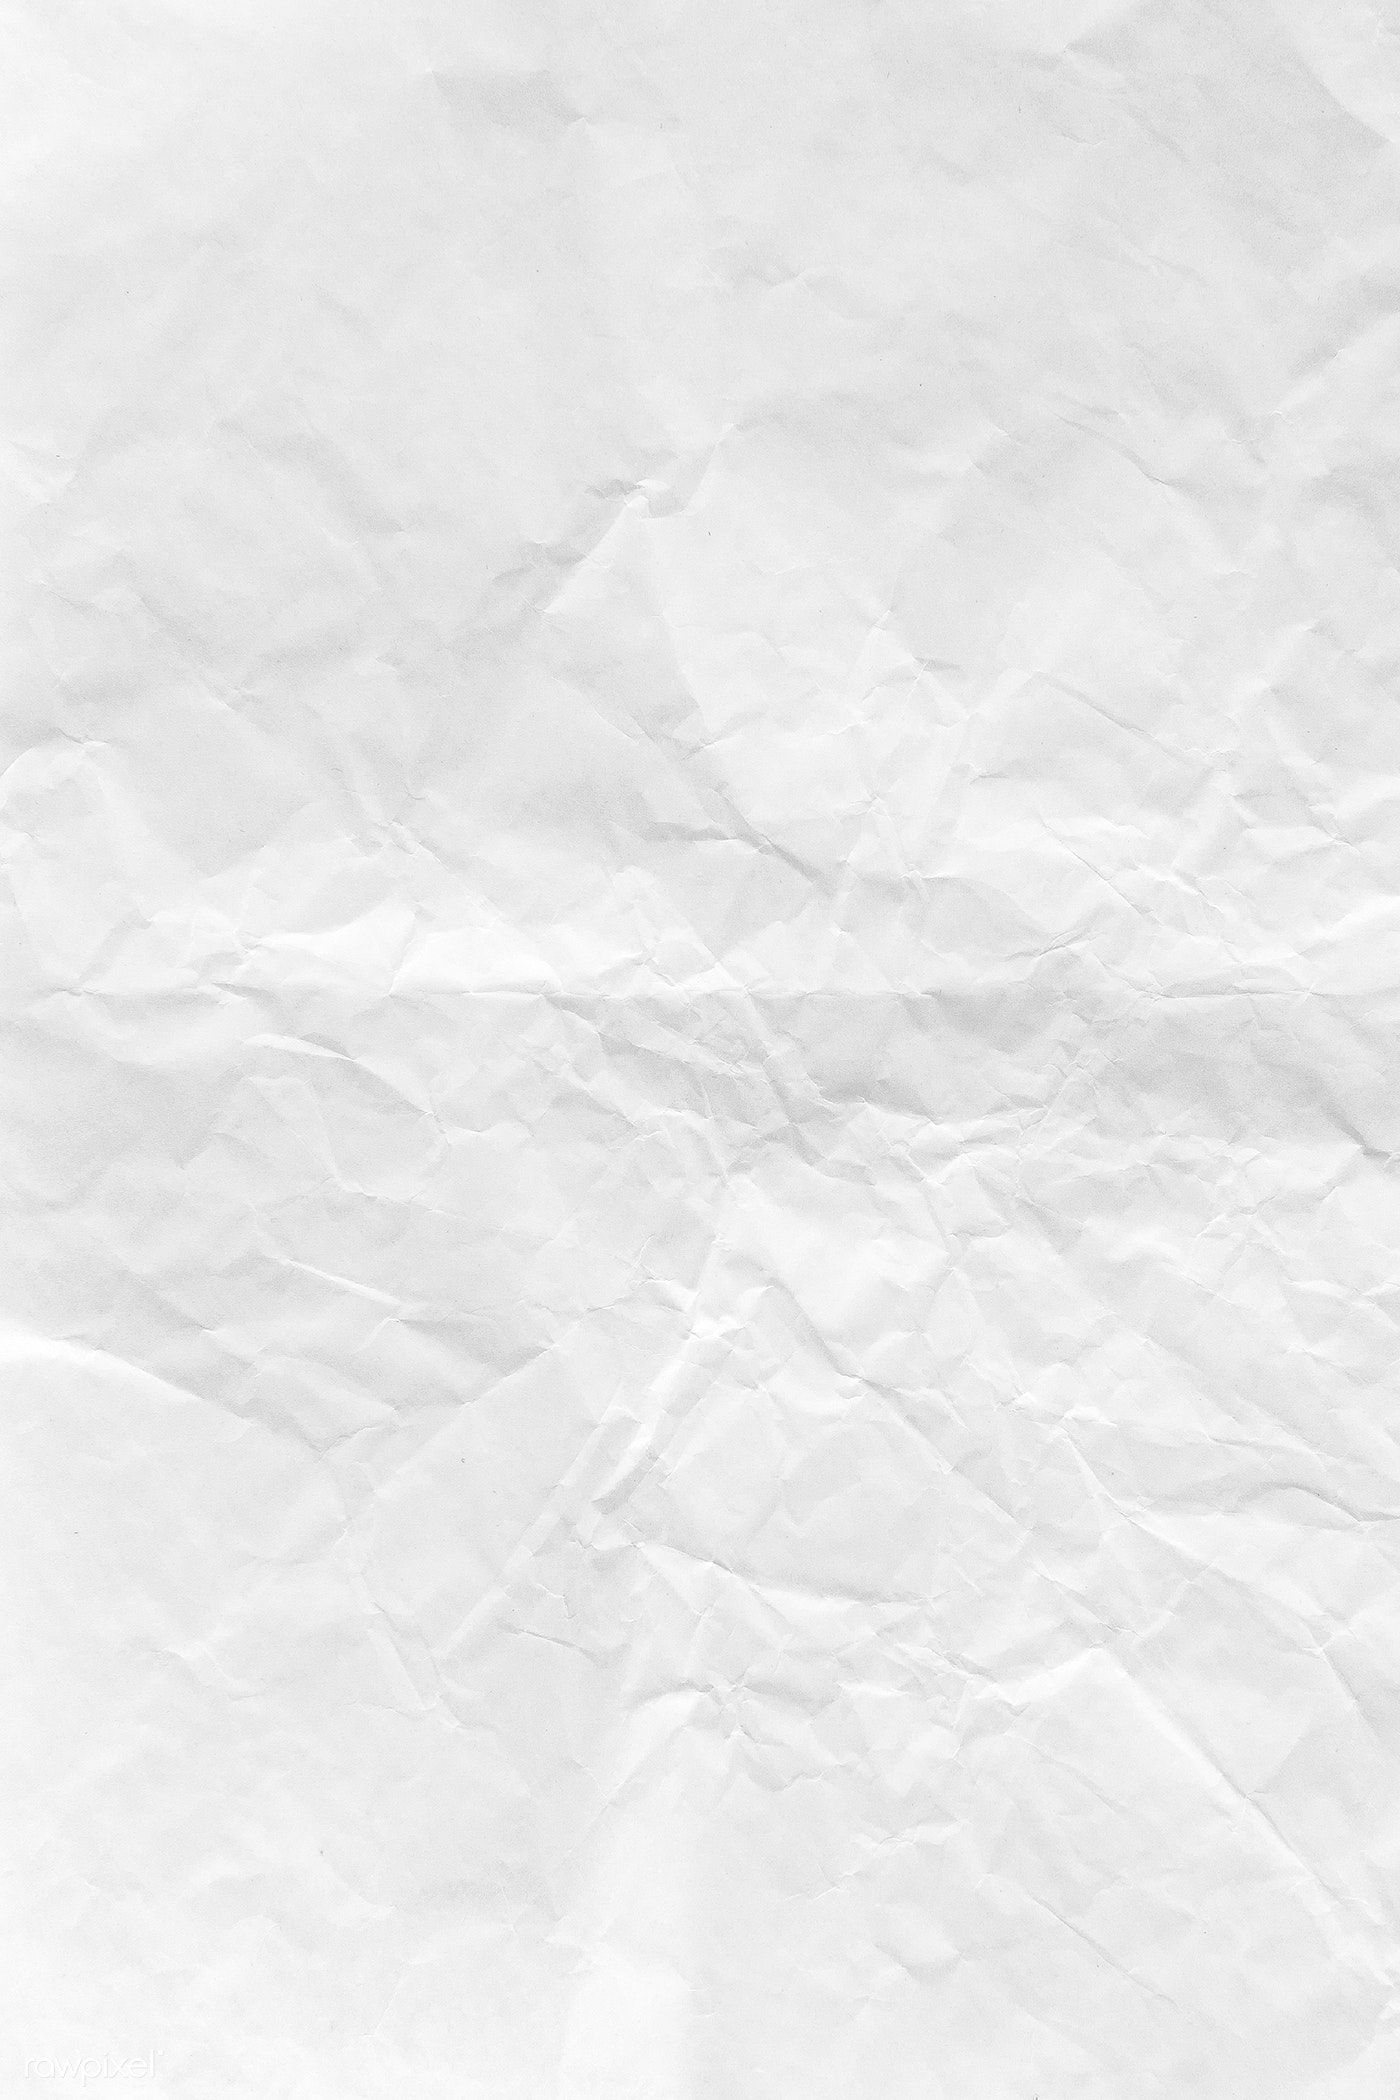 Download Premium Illustration Of Crumpled White Paper Textured Background White Paper Texture Background Paper Texture White Paper Texture